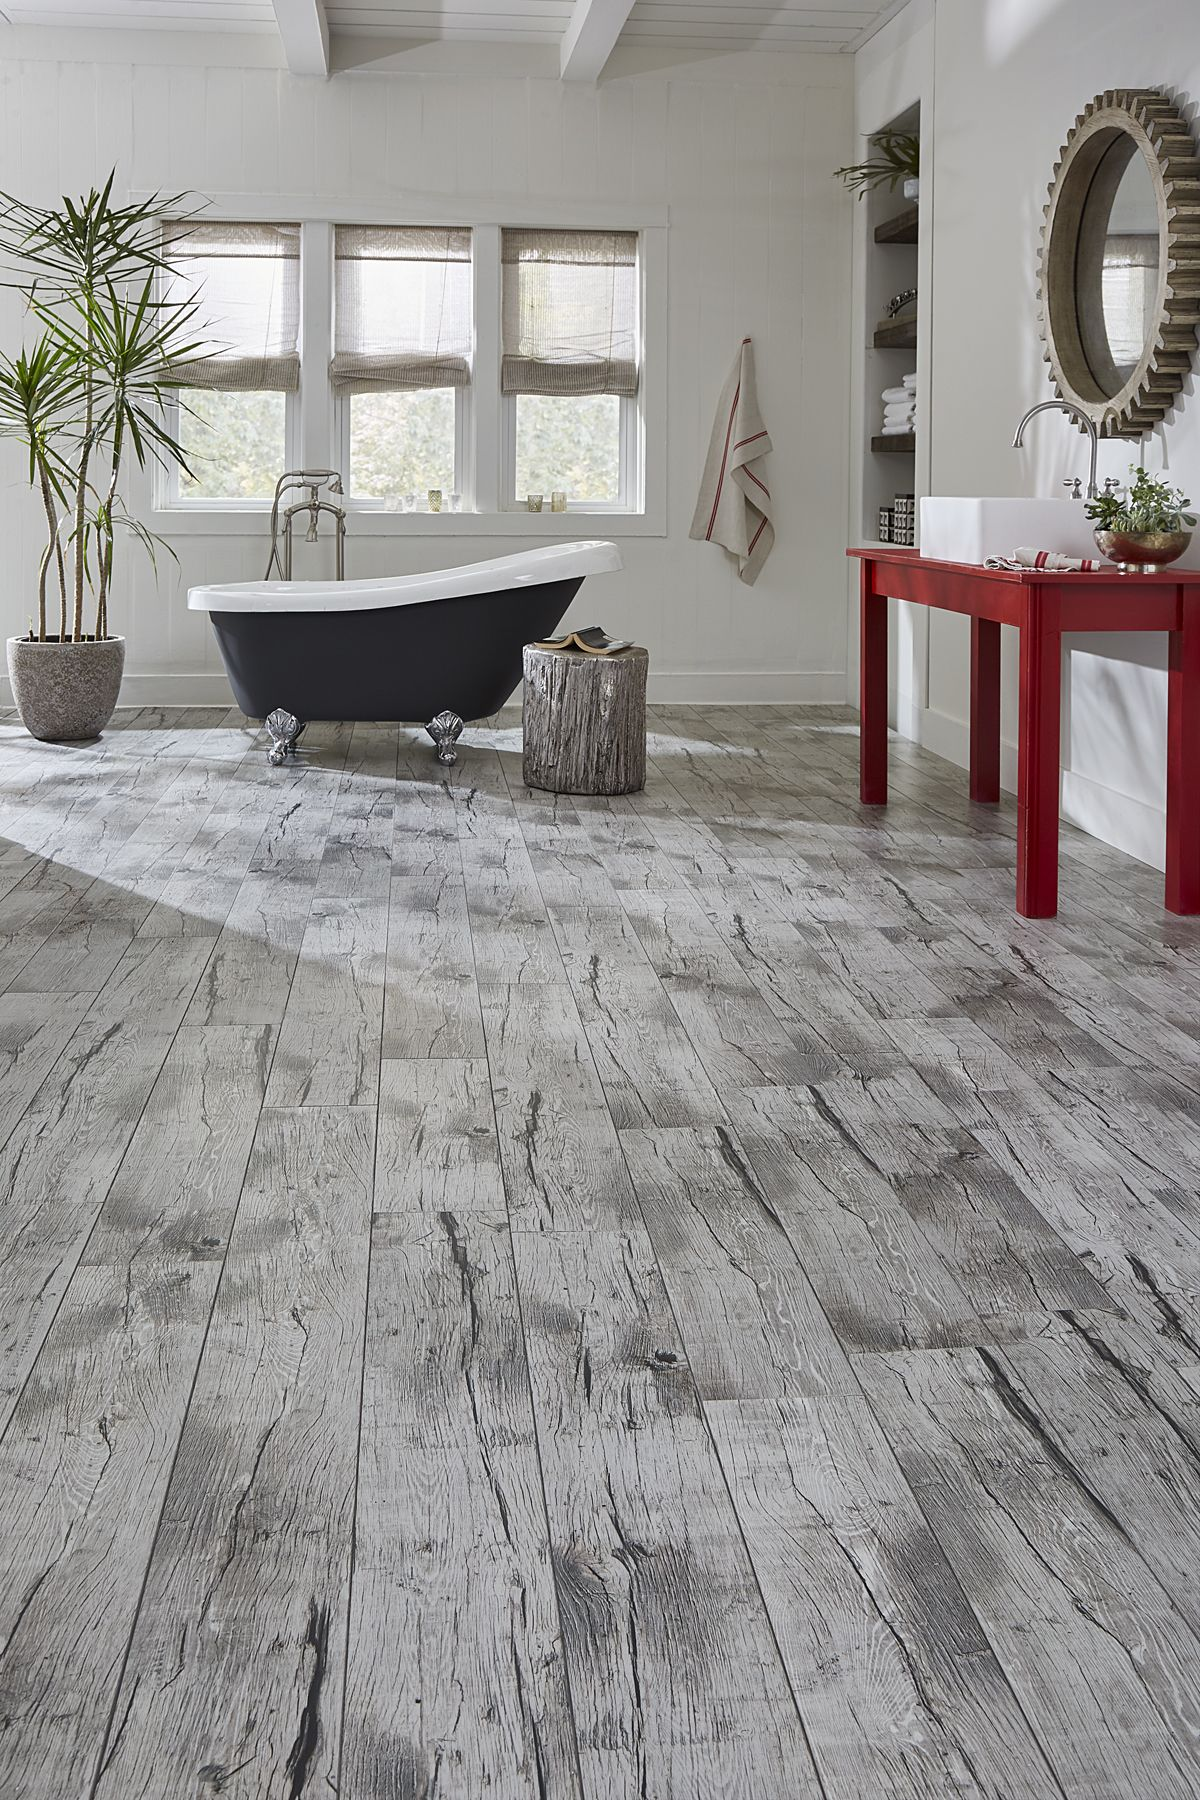 Worry Proof Your Home With The Best Selection Of Waterproof Floors Like Felsen S Port Haven Oak Ccp It Has All Benefits Tile But Clicks Together